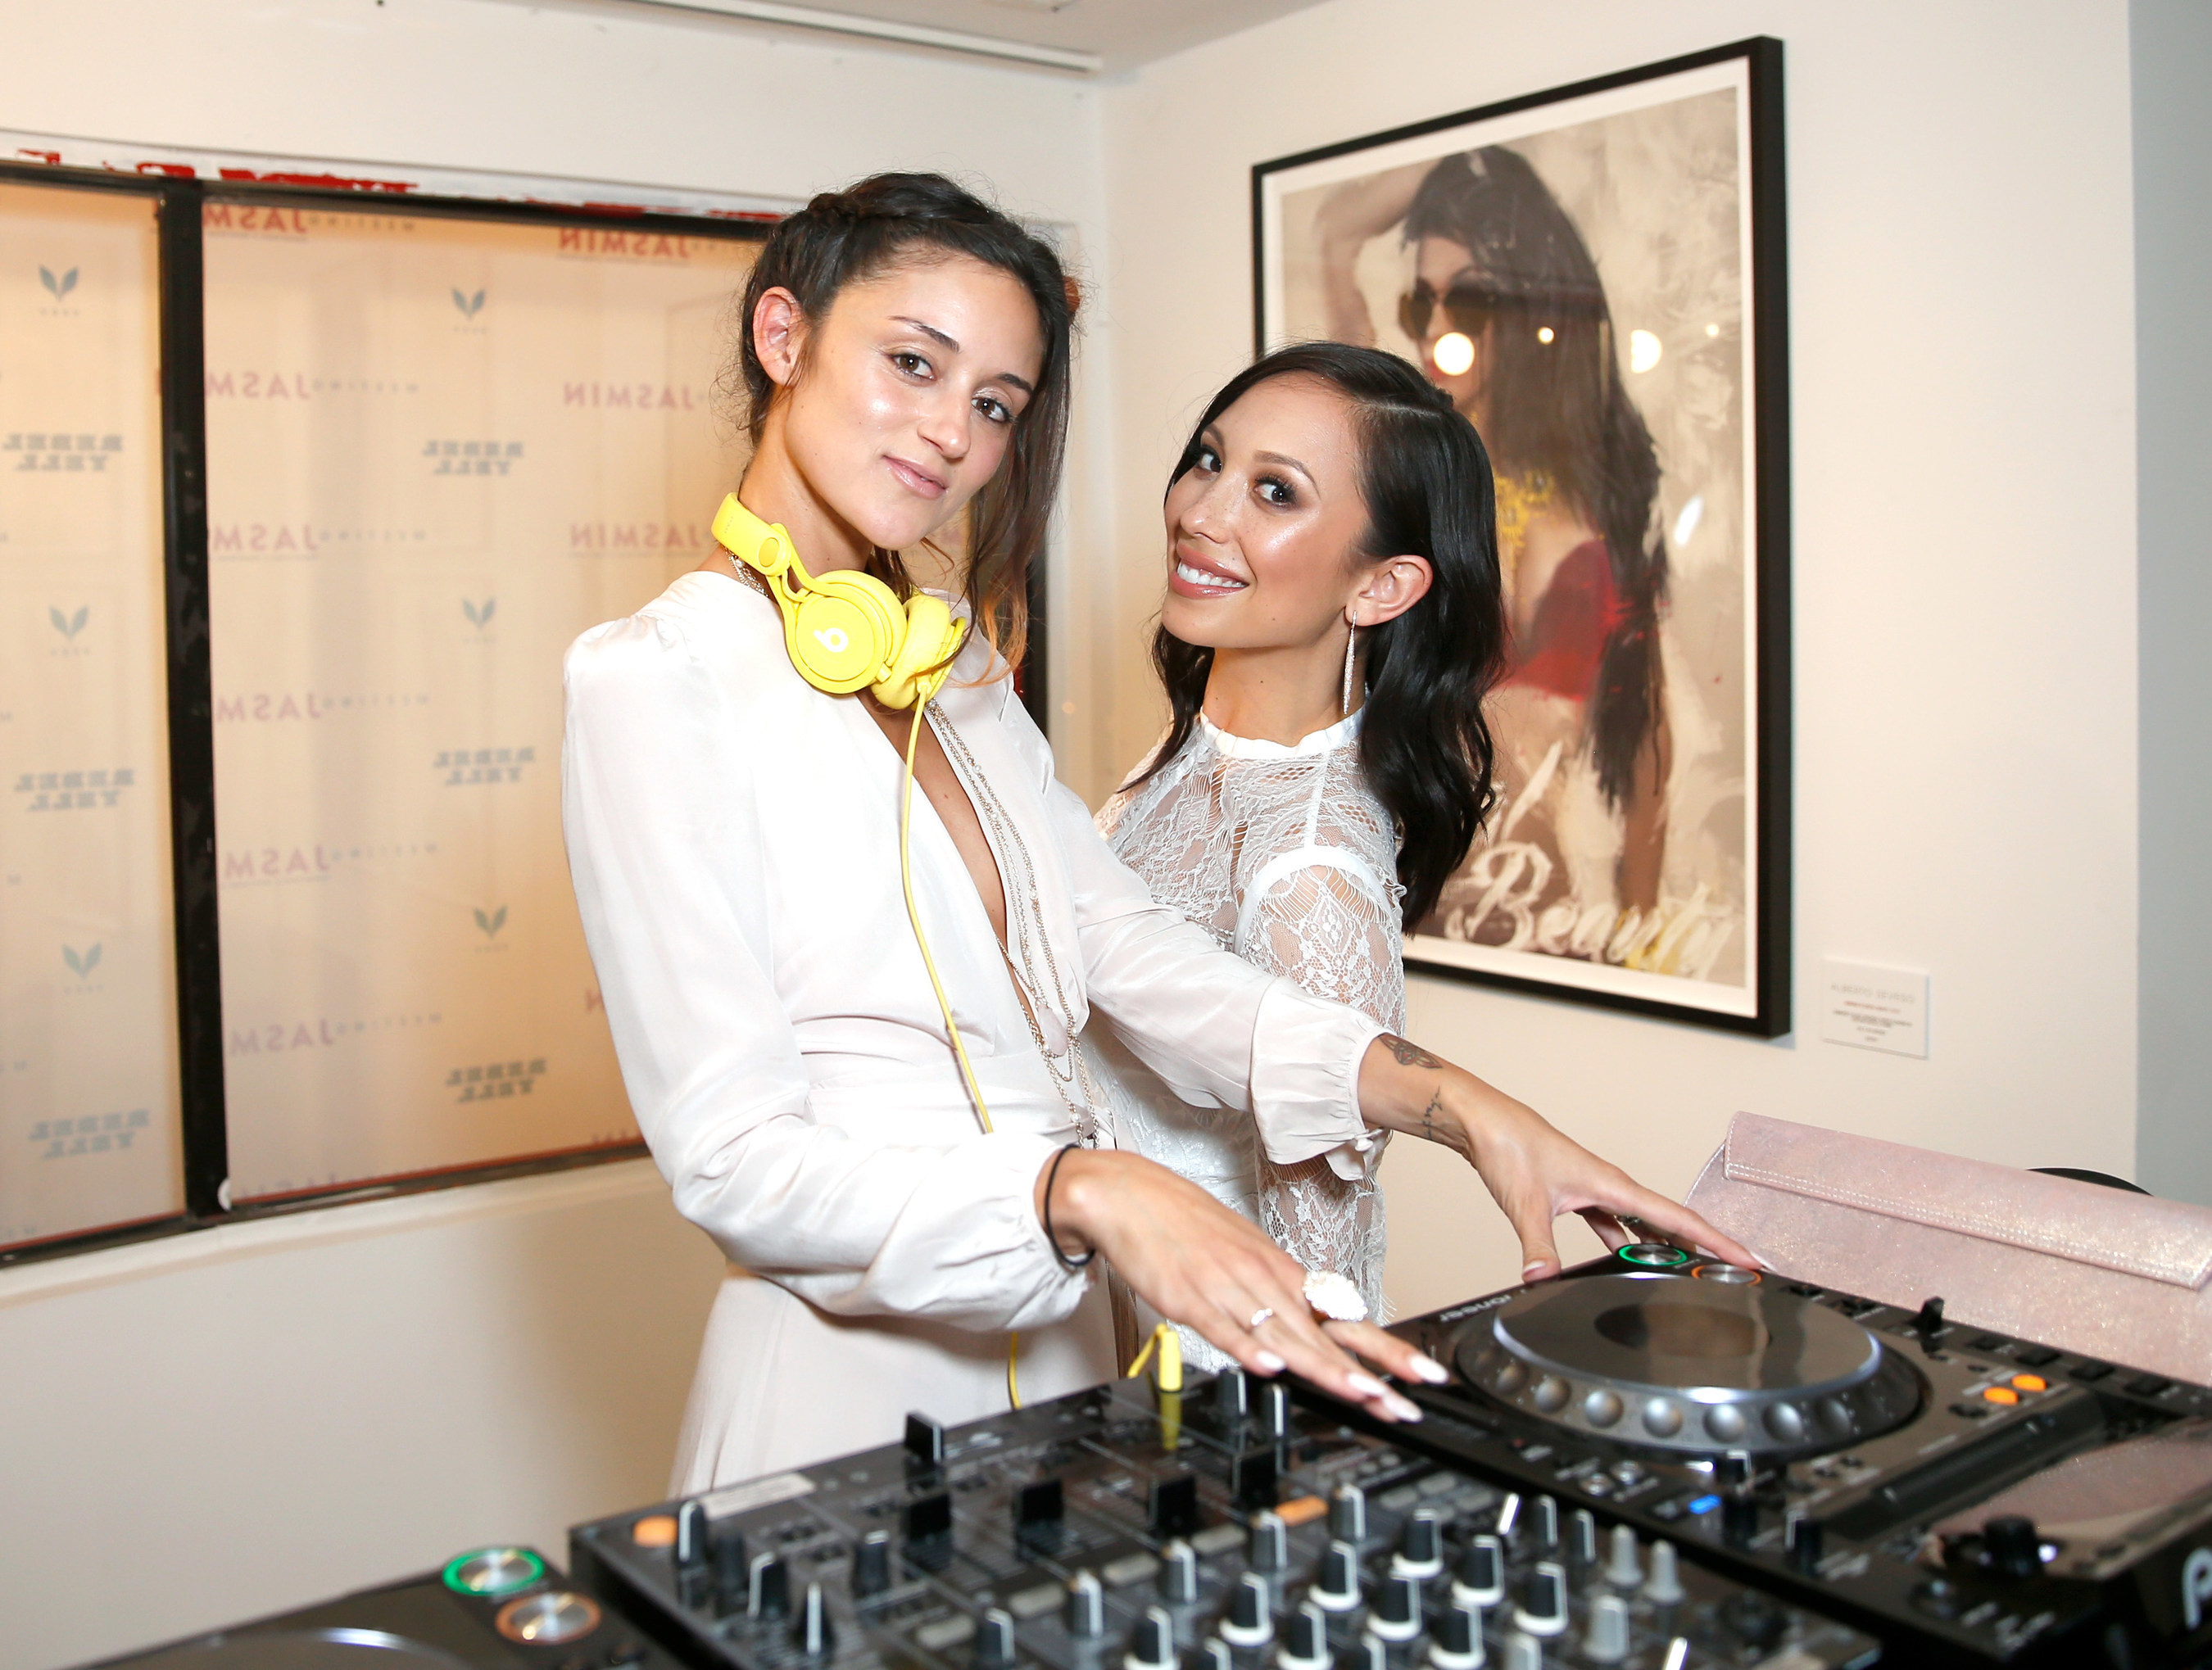 DJ Caroline D'Amore spun an inspired set while friend and Dancing with the Stars alum, Cheryl Burke, grooved to the tunes at the Meeting JASMIN fine art exhibition in Los Angeles, CA.